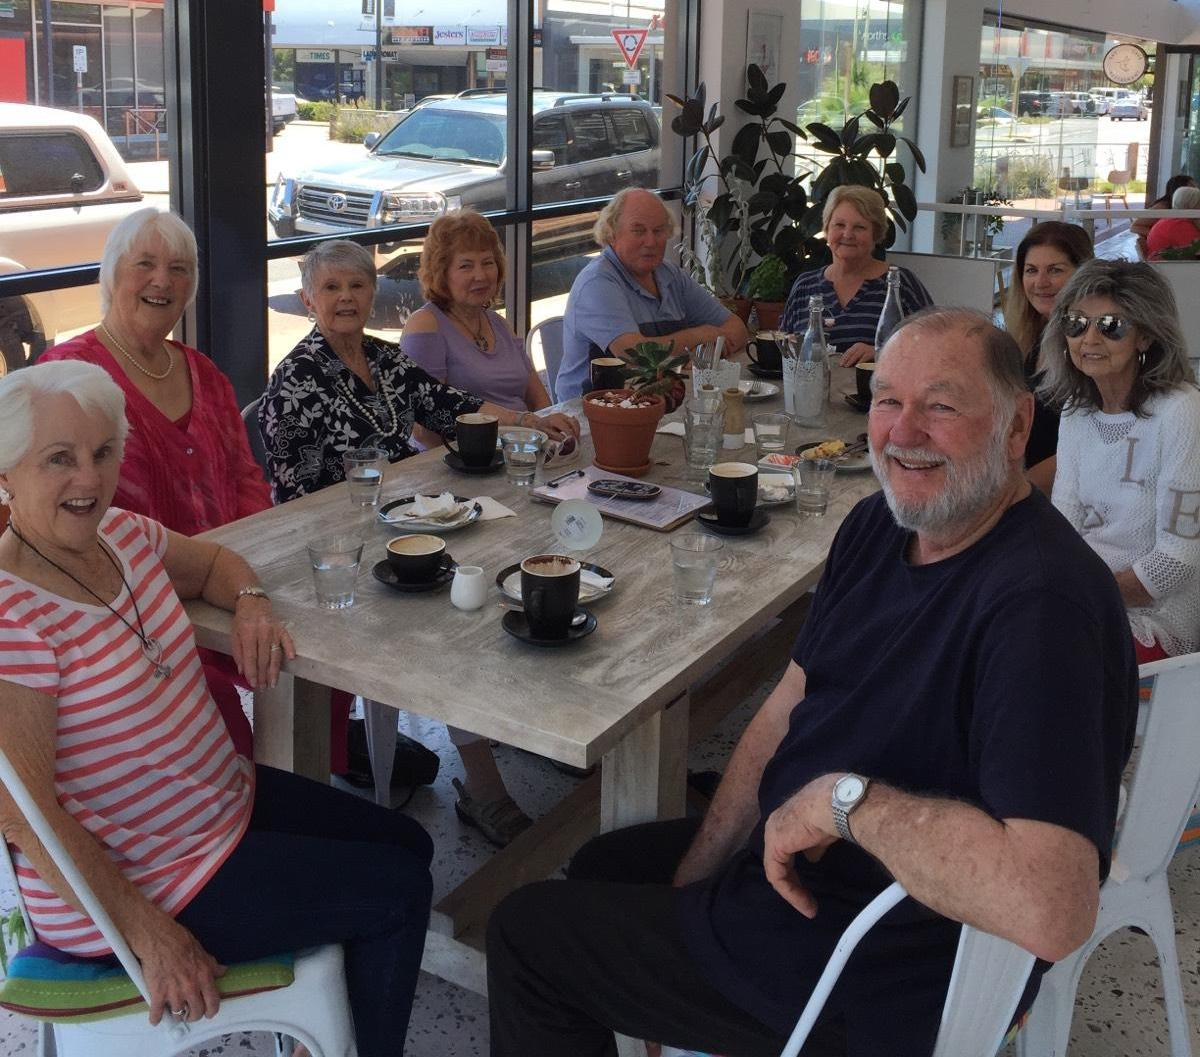 Primetimers (55+) gathers monthly at cafes -